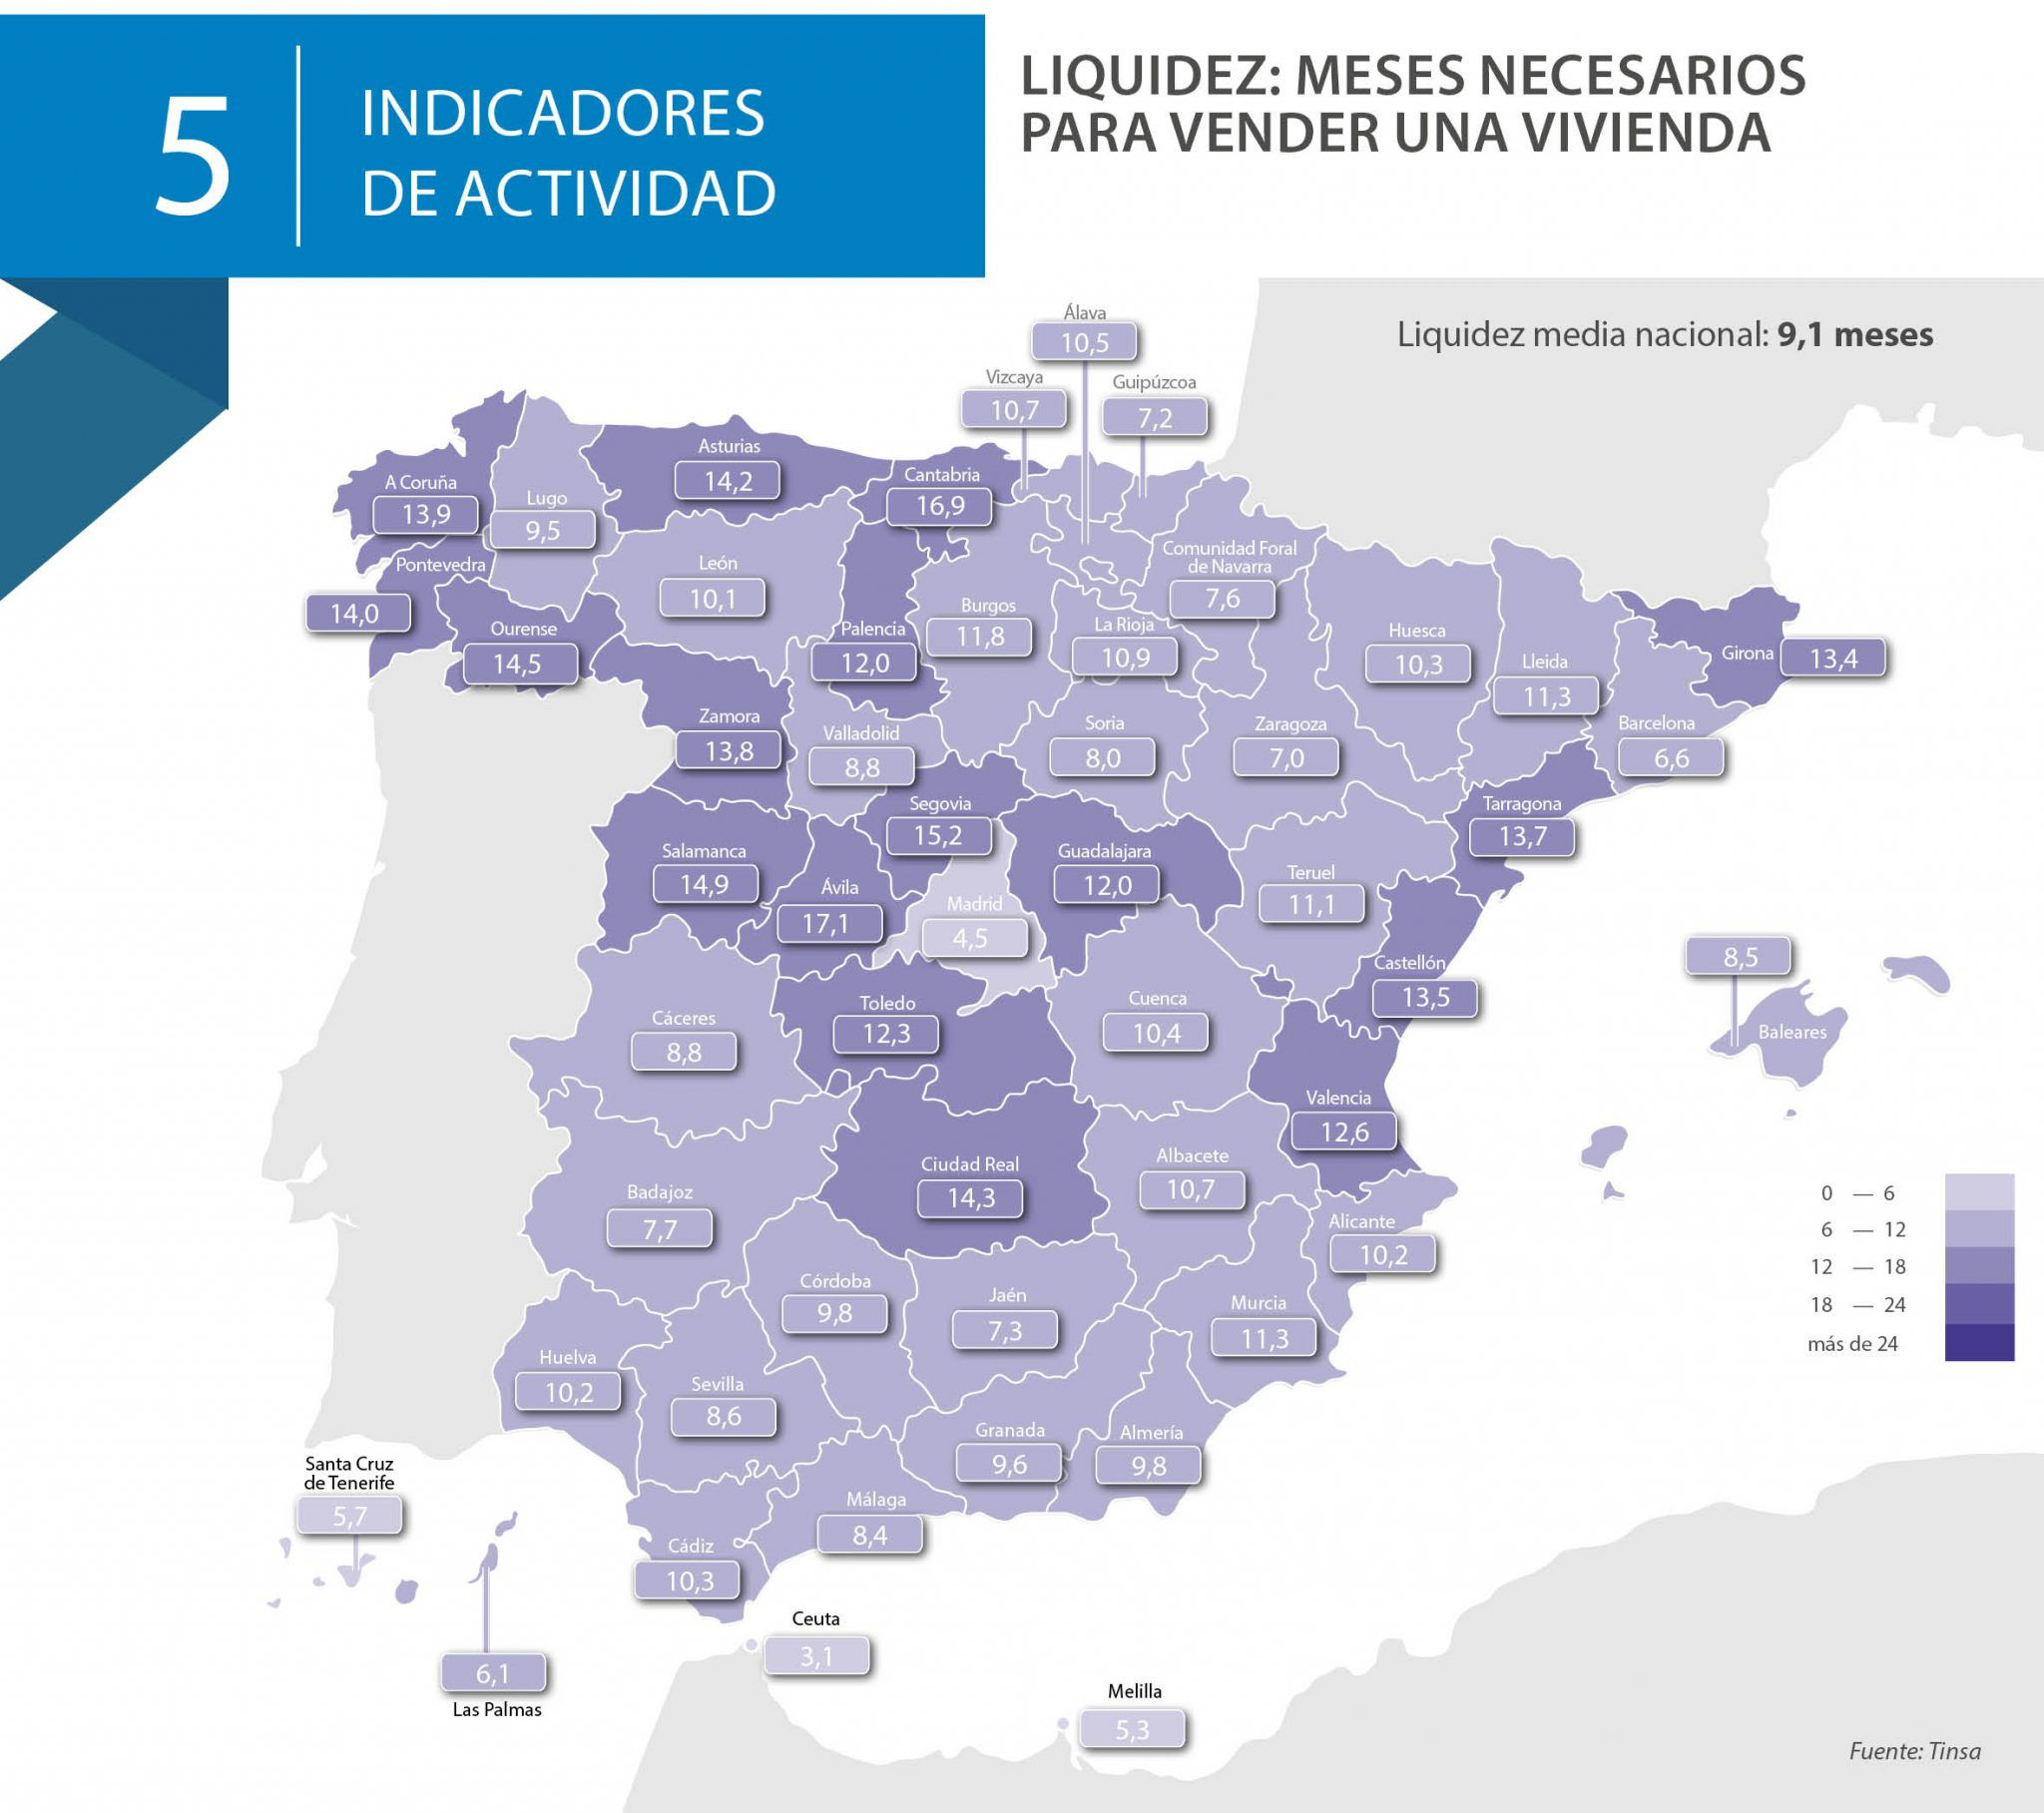 imie mercados locales tercer trimestre 2017